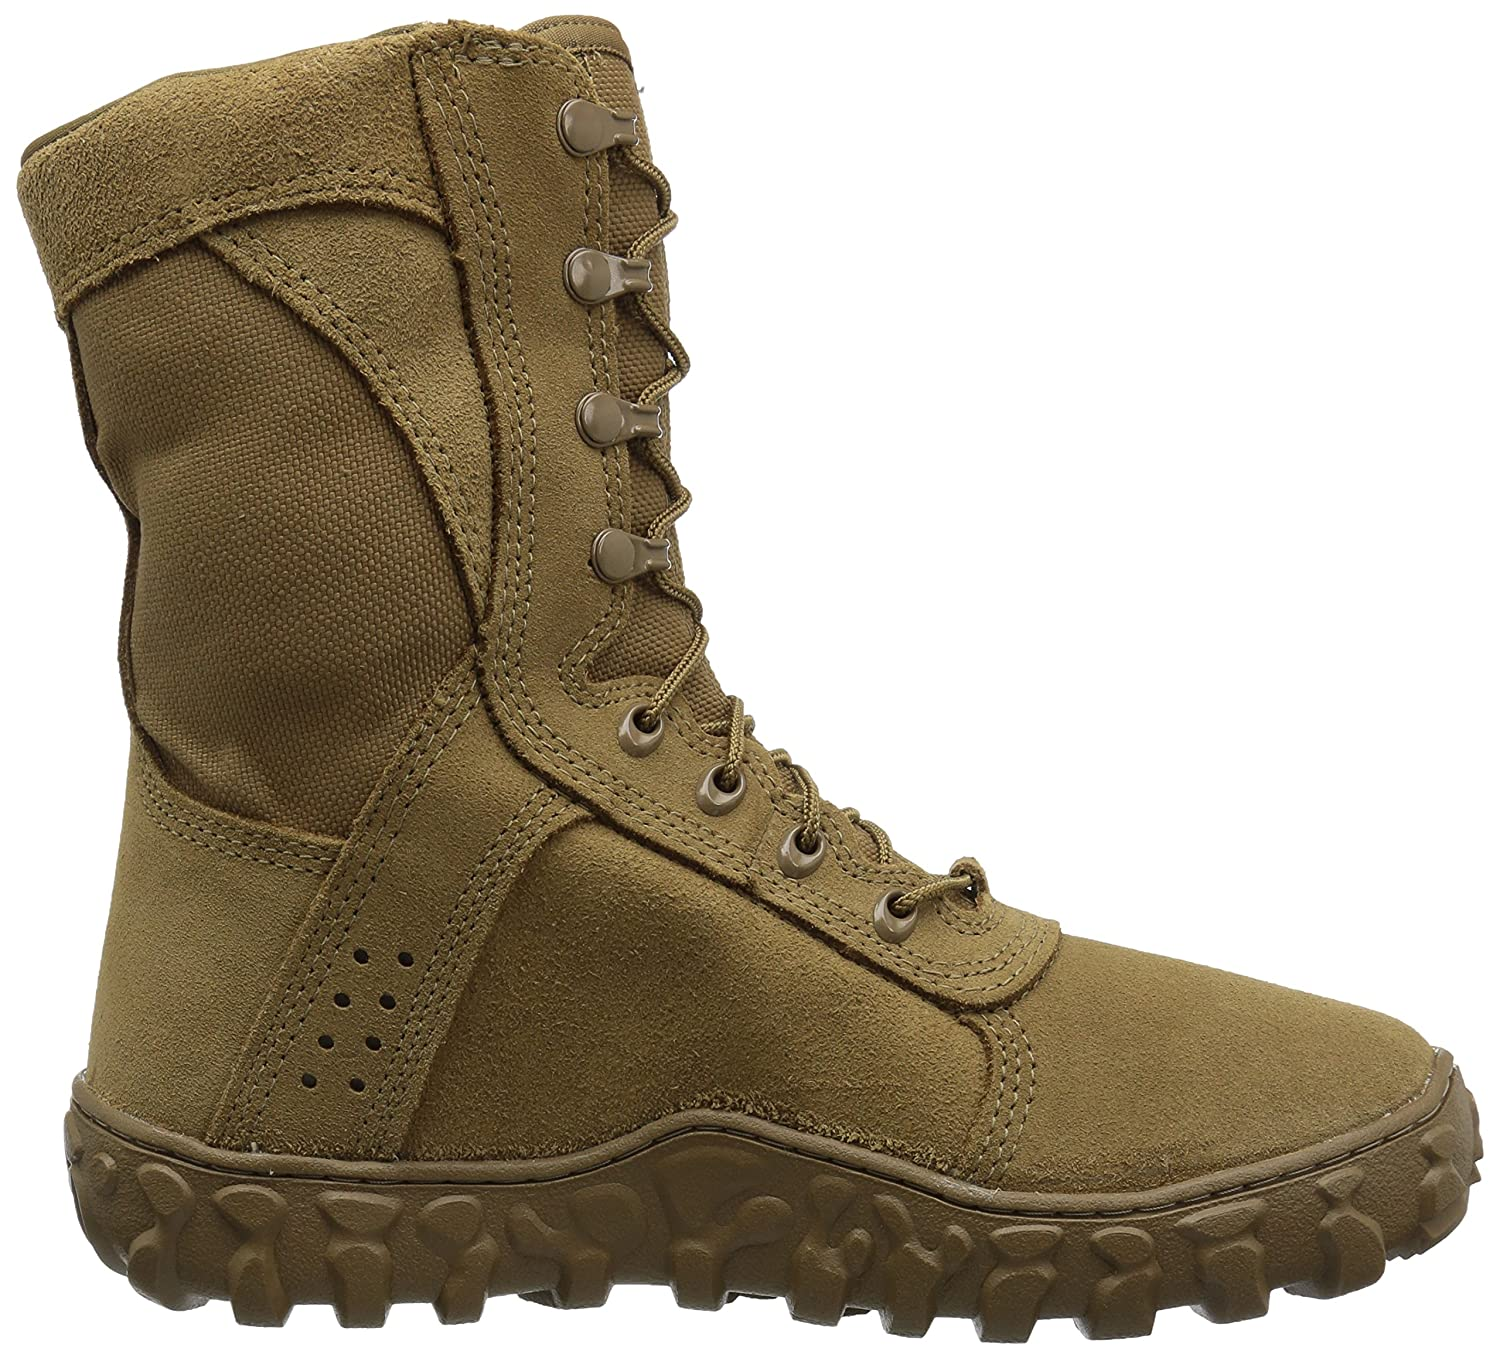 3675f7ed2e9 Rocky Men's Rkc050 Military and Tactical Boot